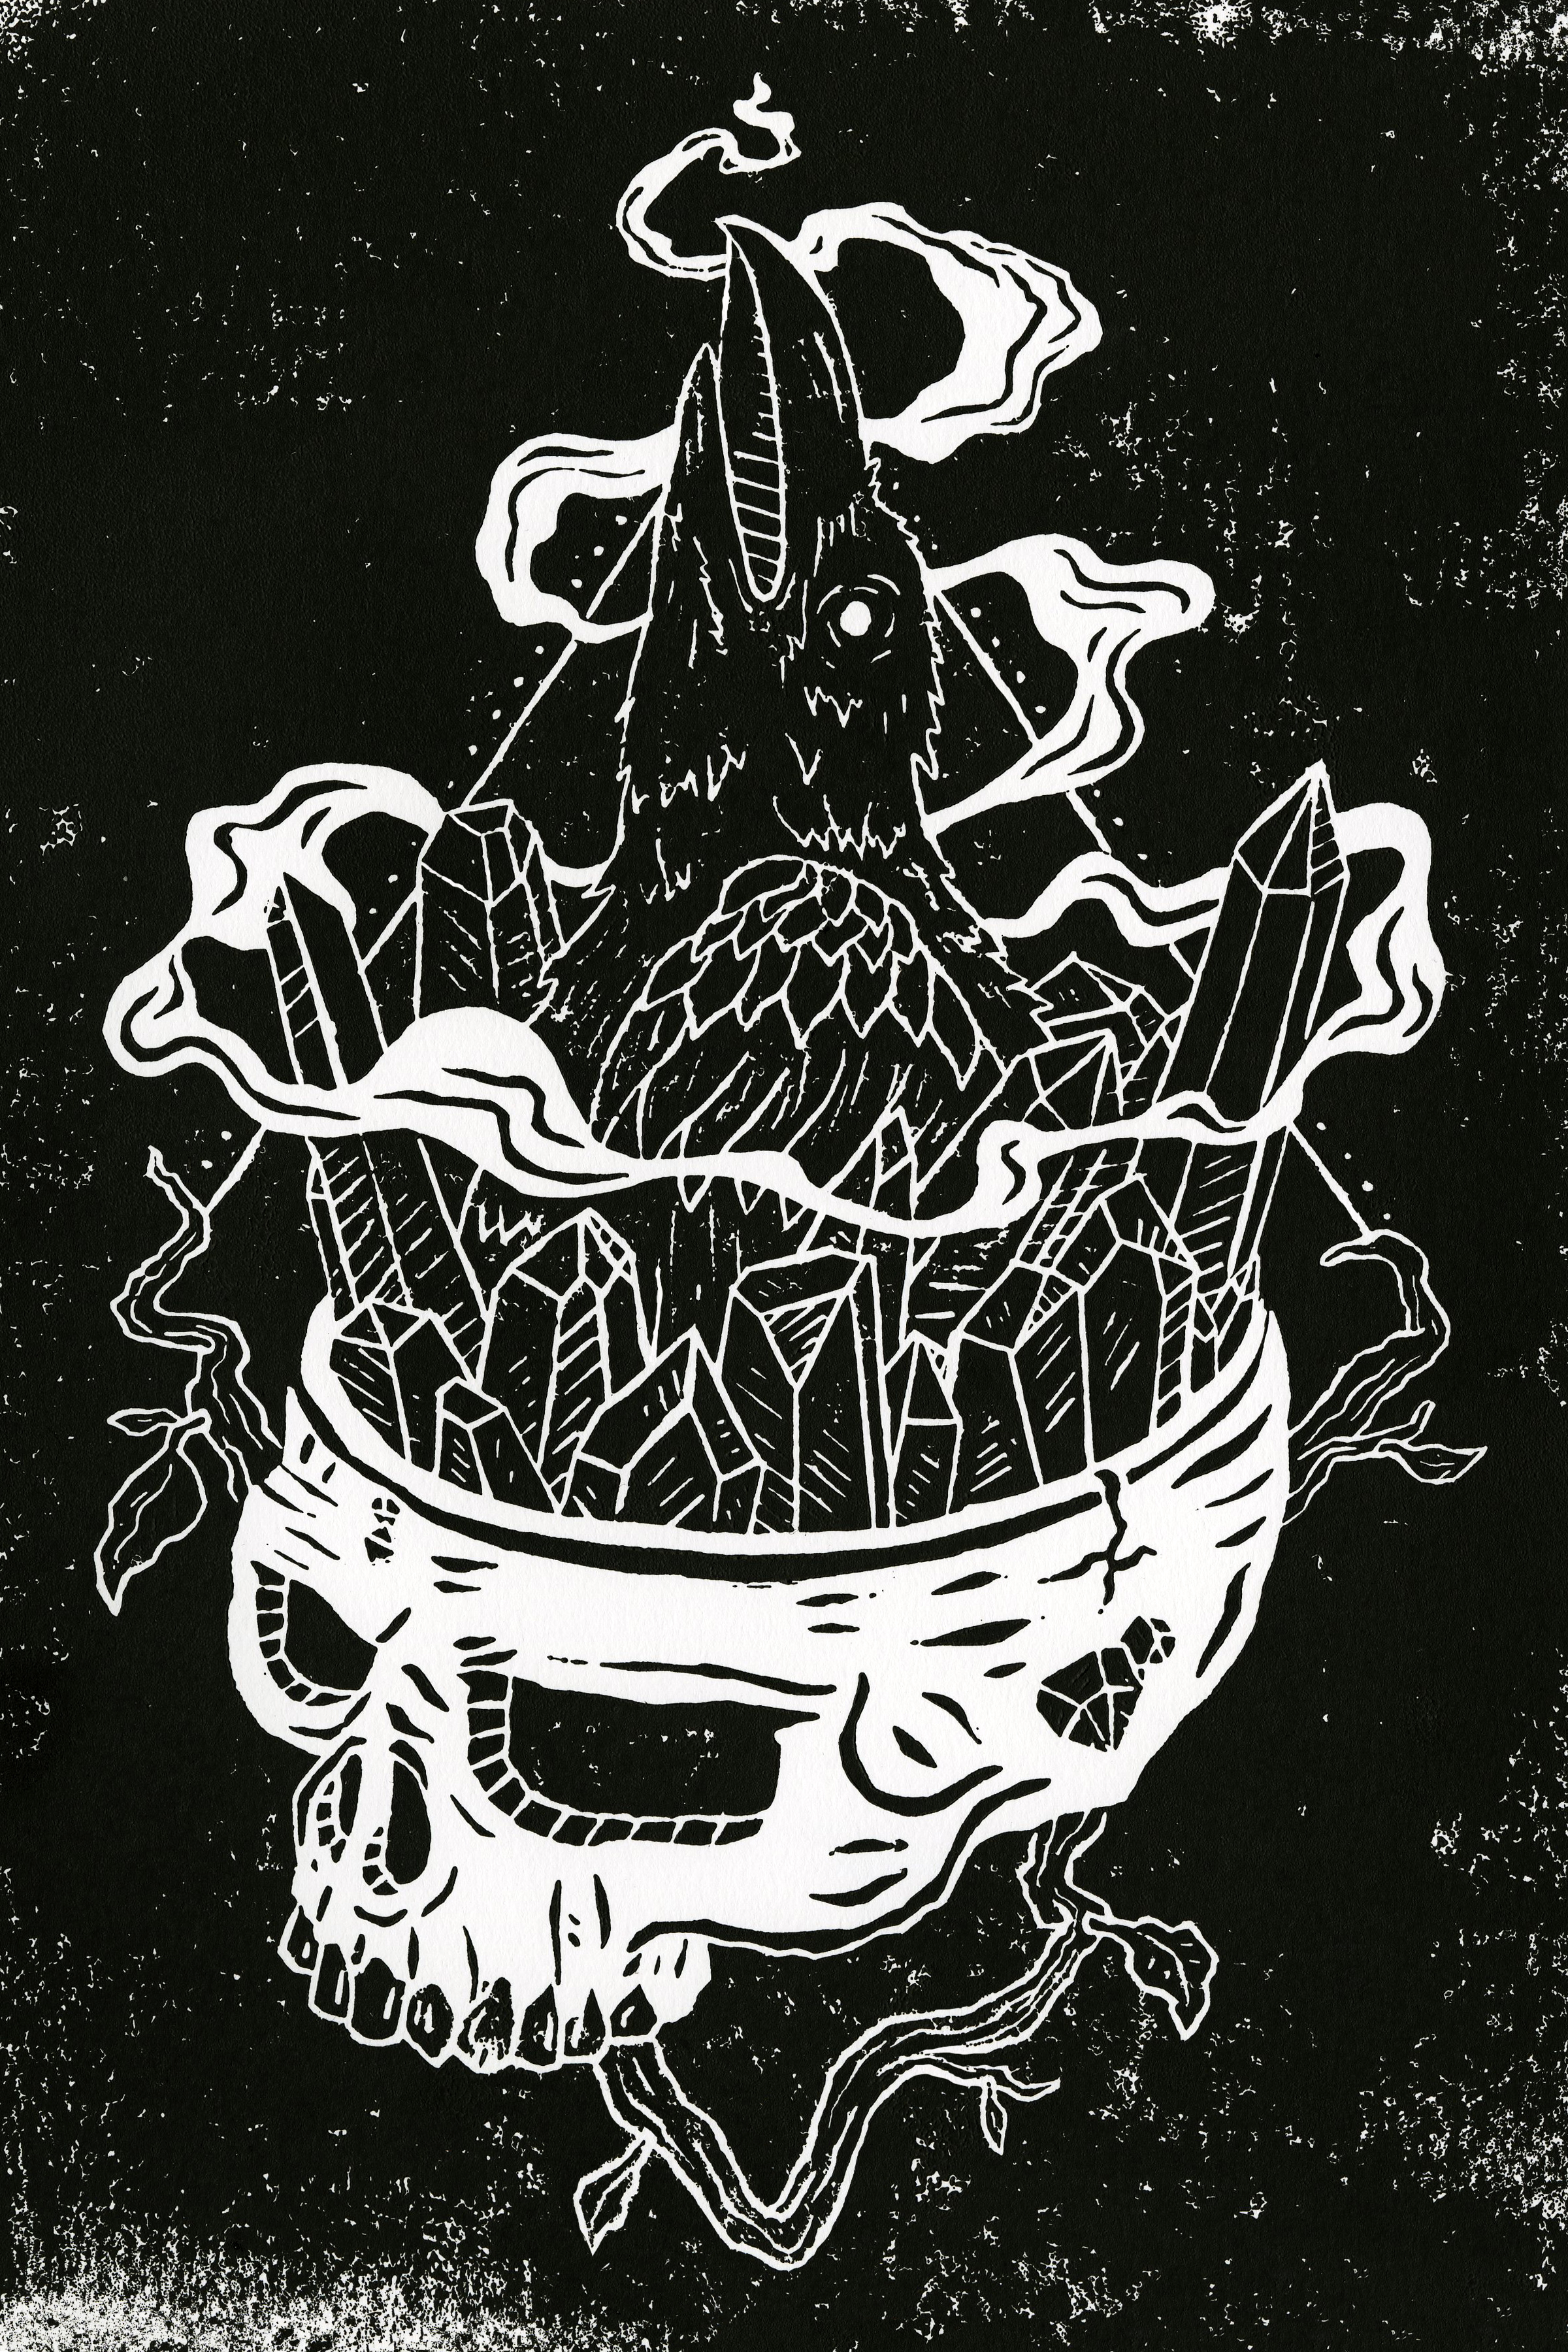 RAVEN OF THE CRYSTAL SKULL - ILLUSTRATION | FREELANCEIndependent linocut exploration featuring a skull, raven, crystals.